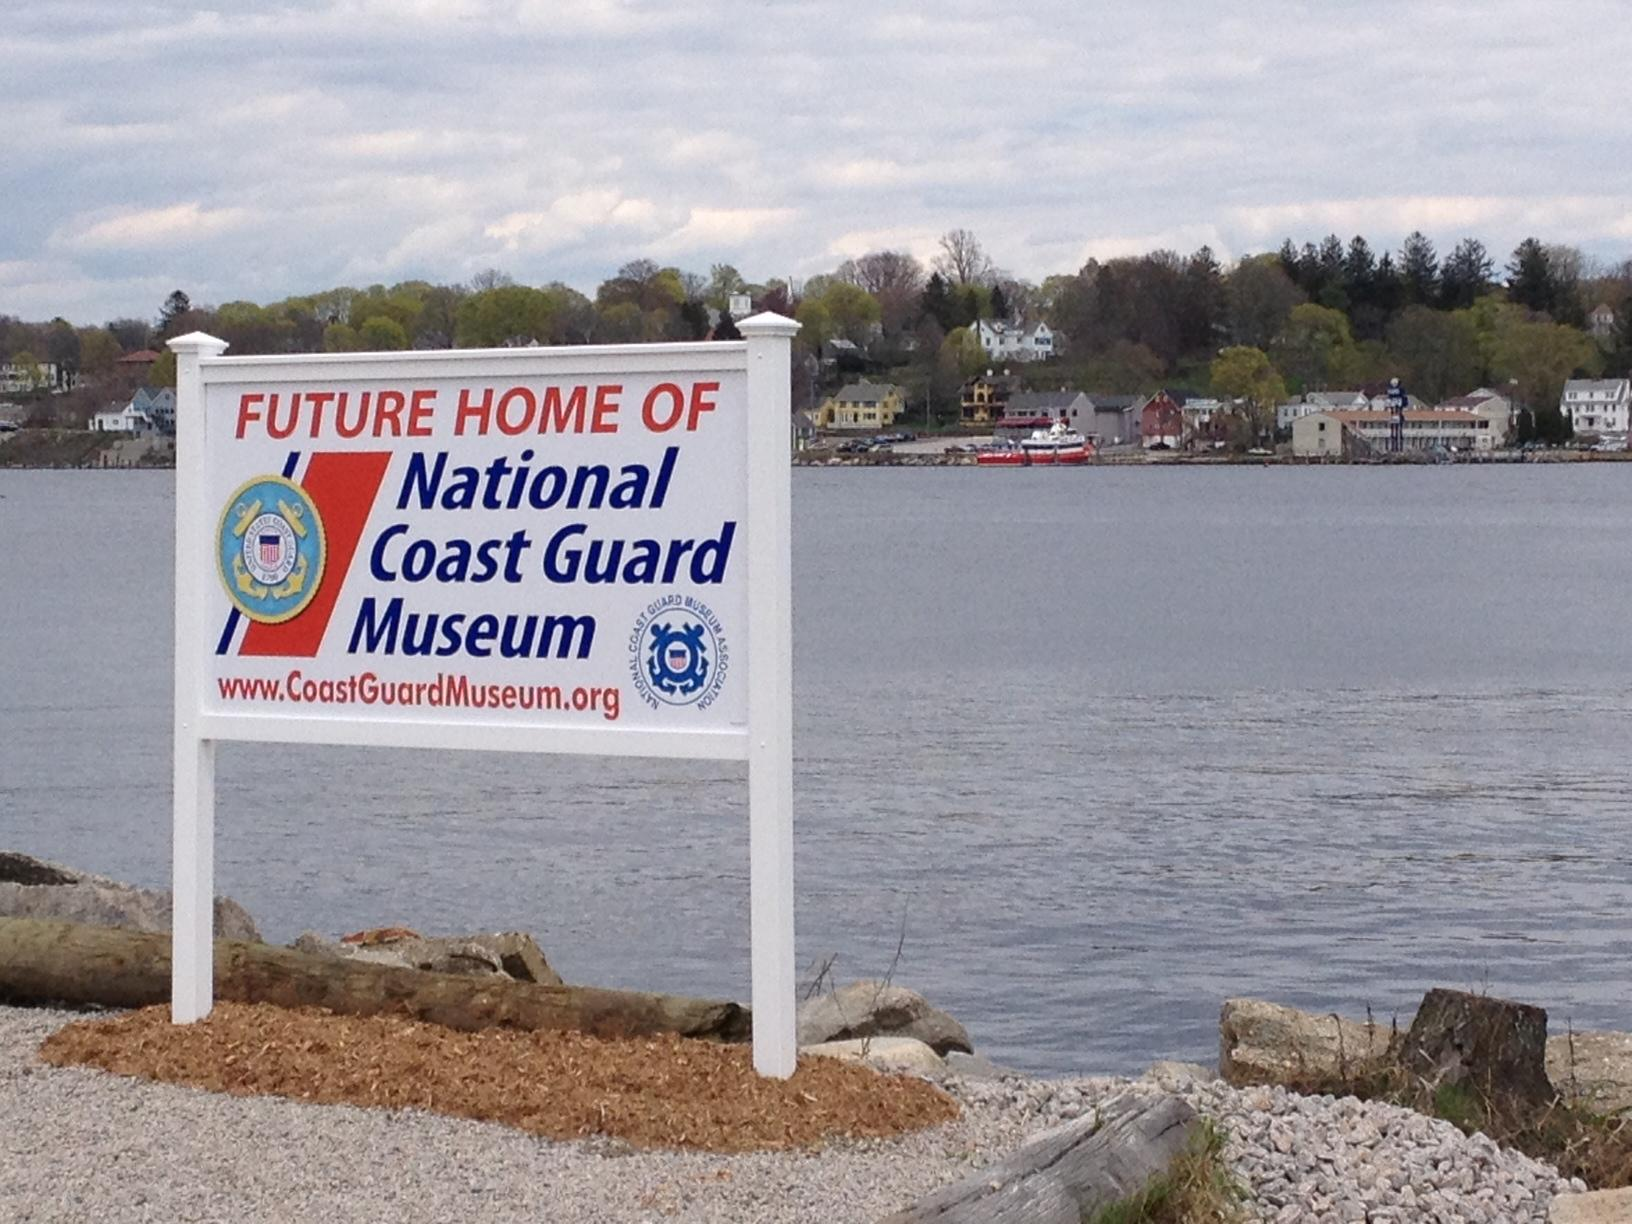 Home of National Coast Guard Museum